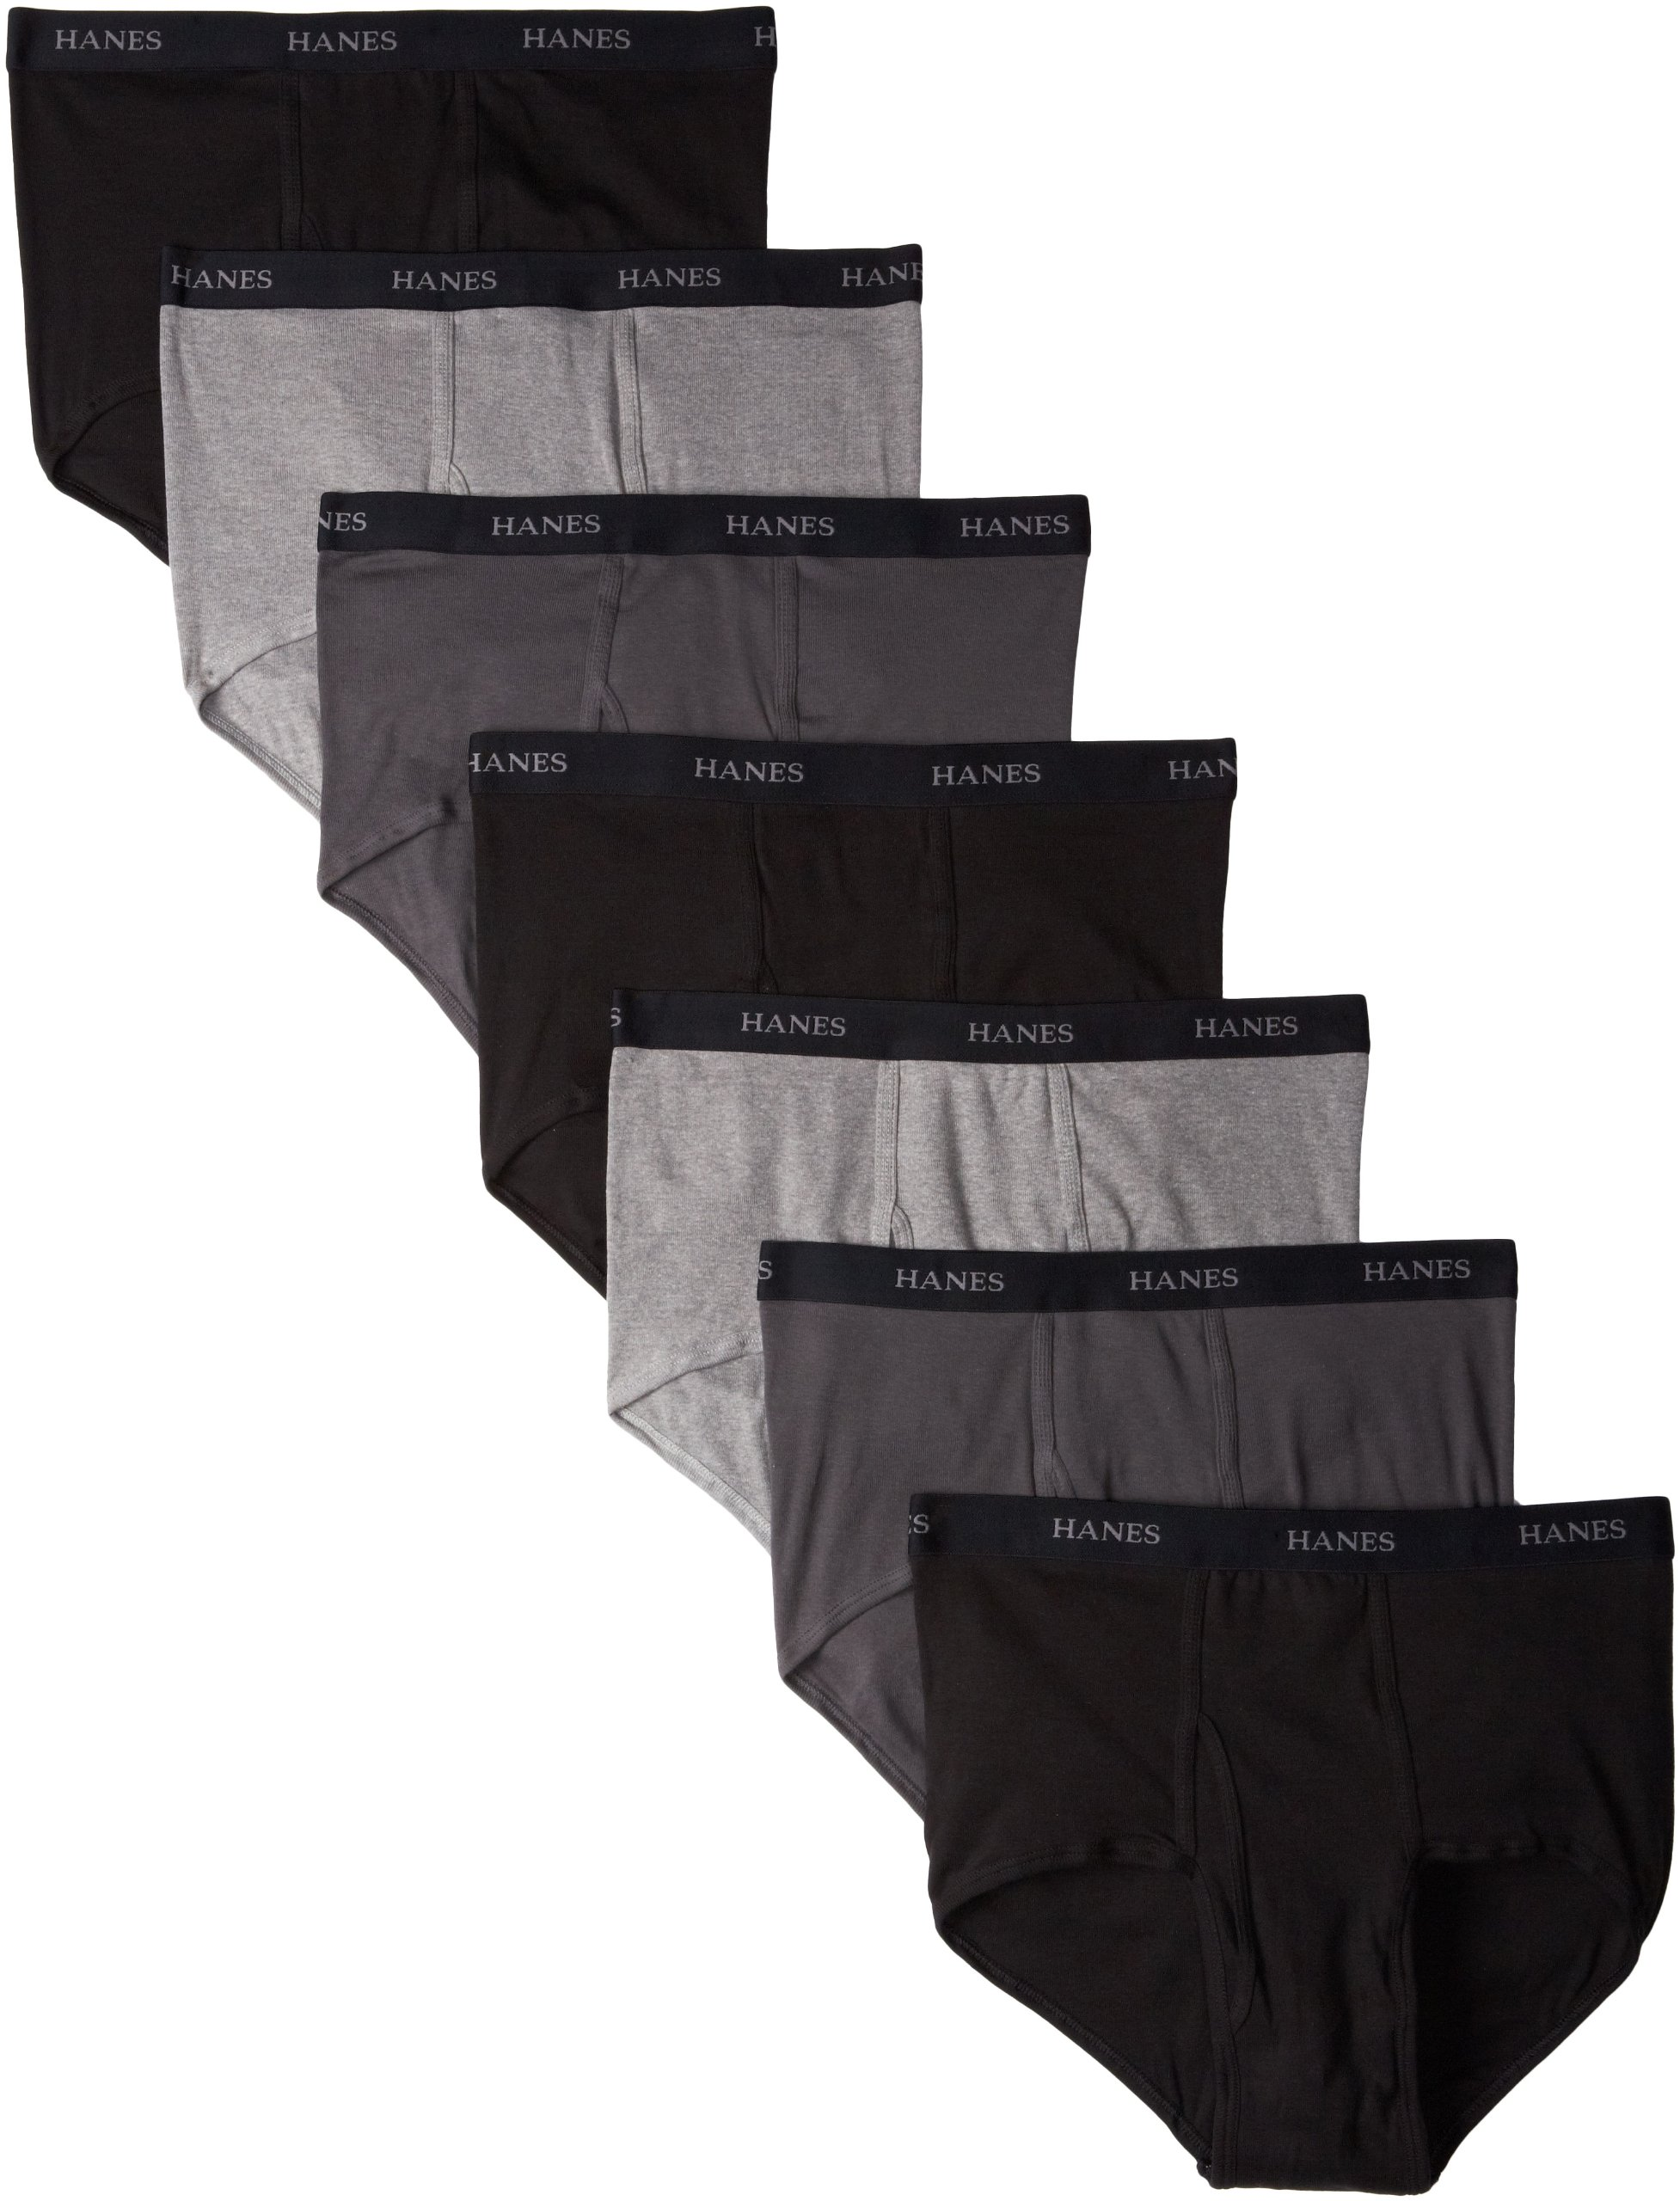 Hanes Ultimate Men's 7-Pack Full-Cut Briefs - Colors May Vary, Black/Grey, Large